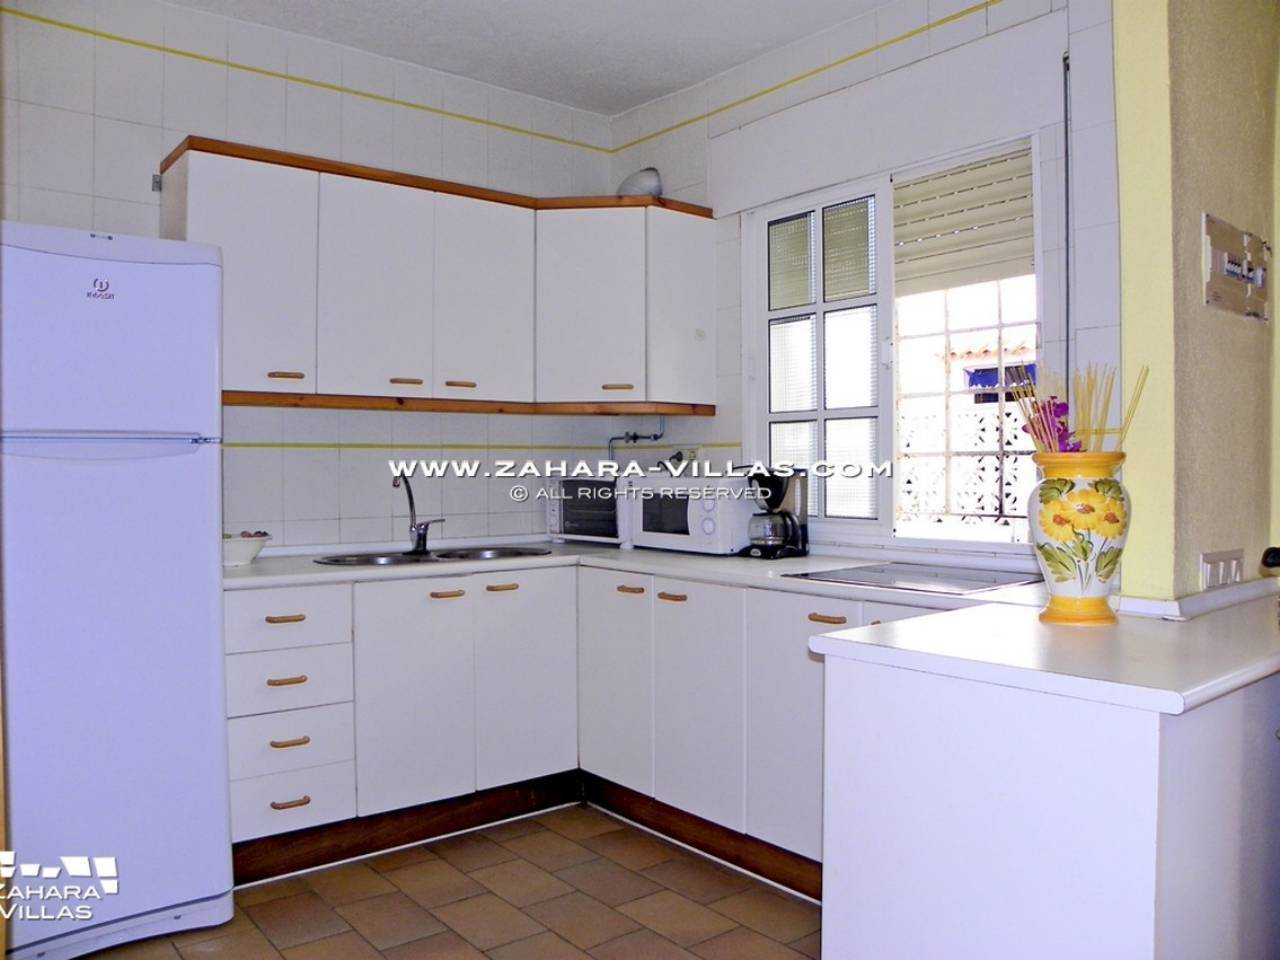 Imagen 5 de Great Townhouse in the village of Zahara de los Atunes for sale